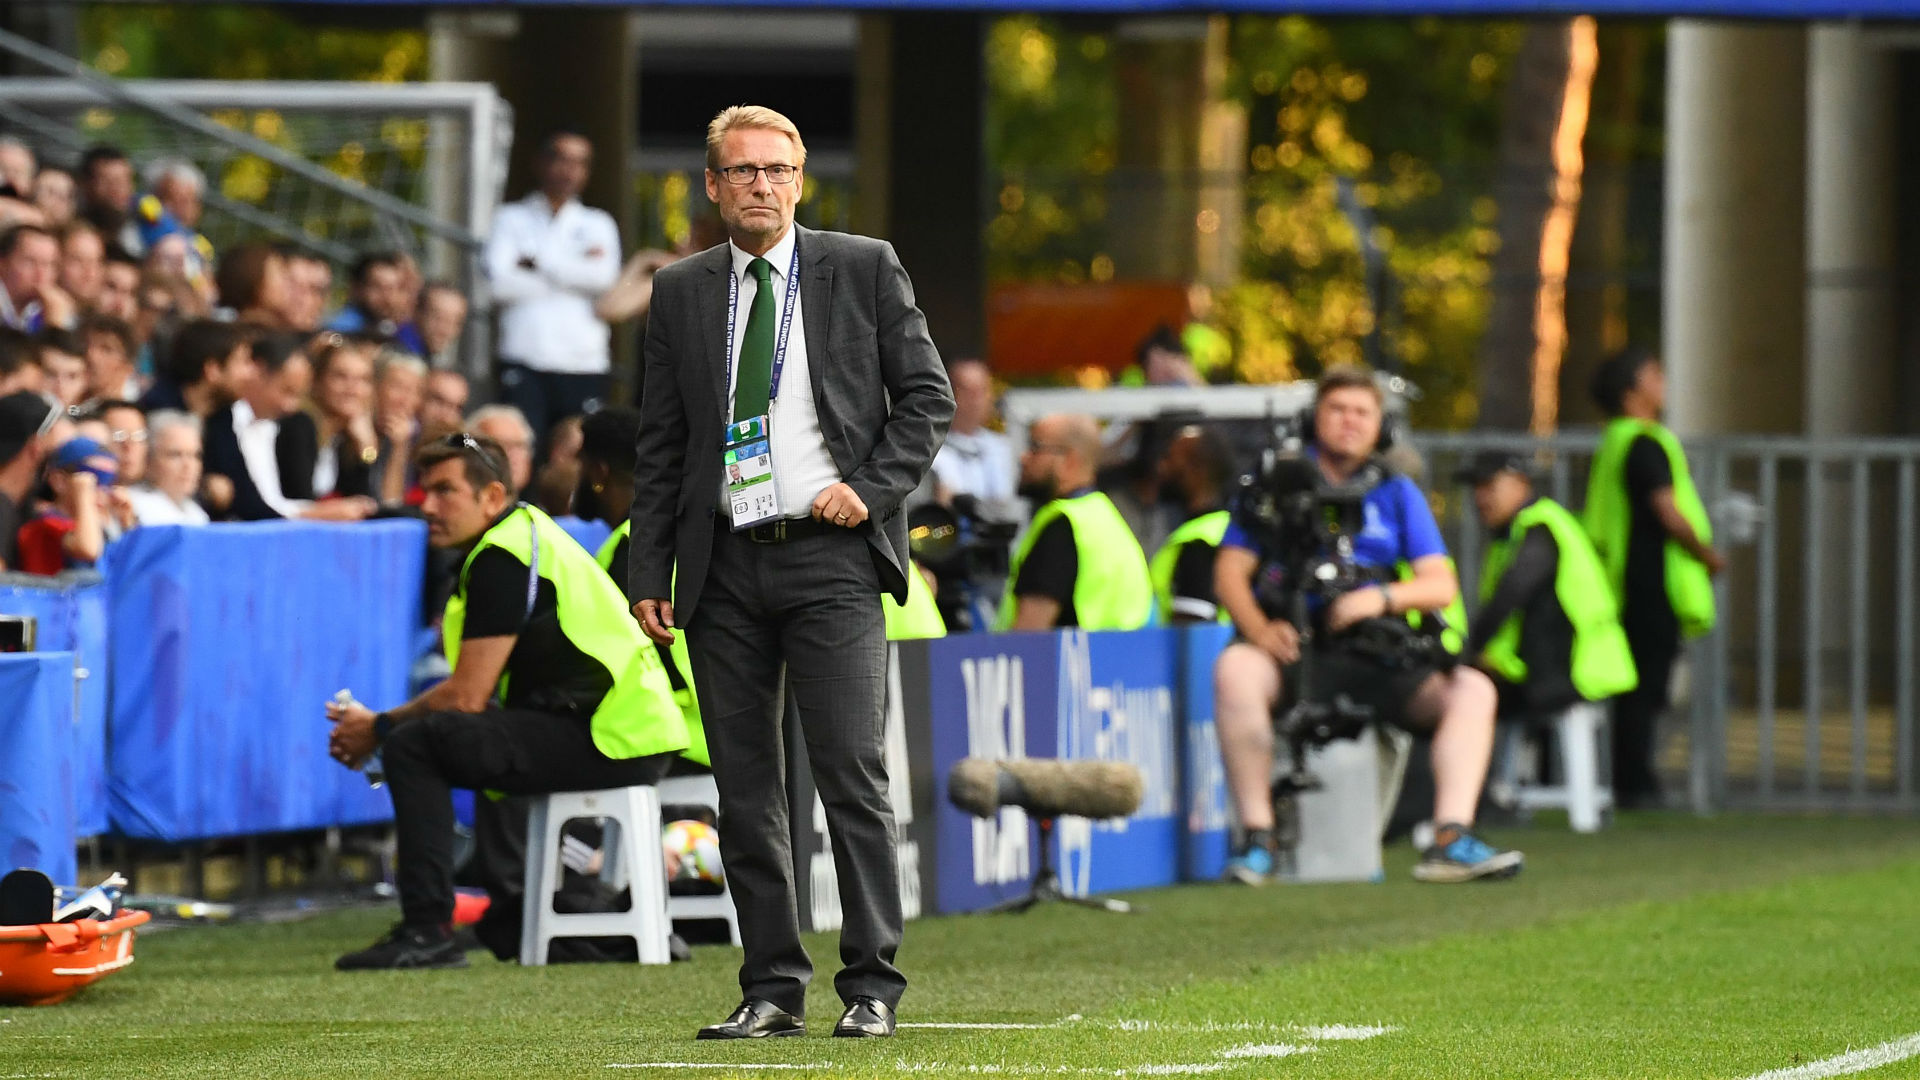 'He should continue to coach Super Falcons' - Sunday Dare intervenes in Dennerby saga